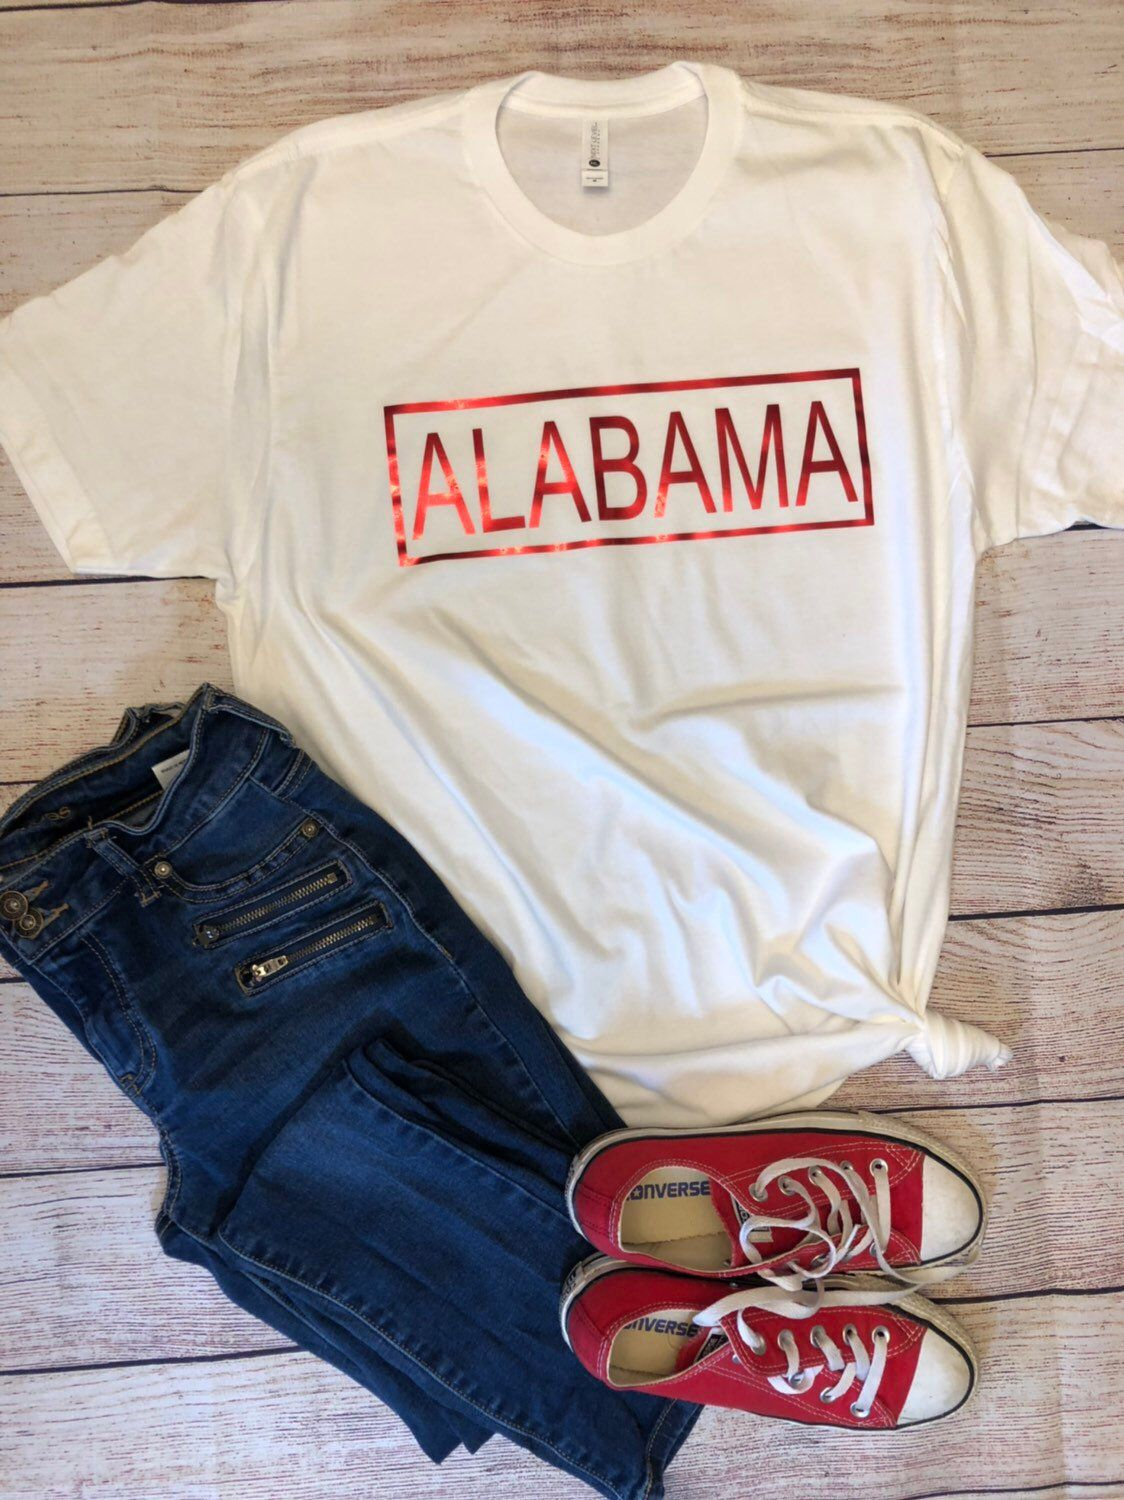 Excited to share this item from my etsy shop alabama